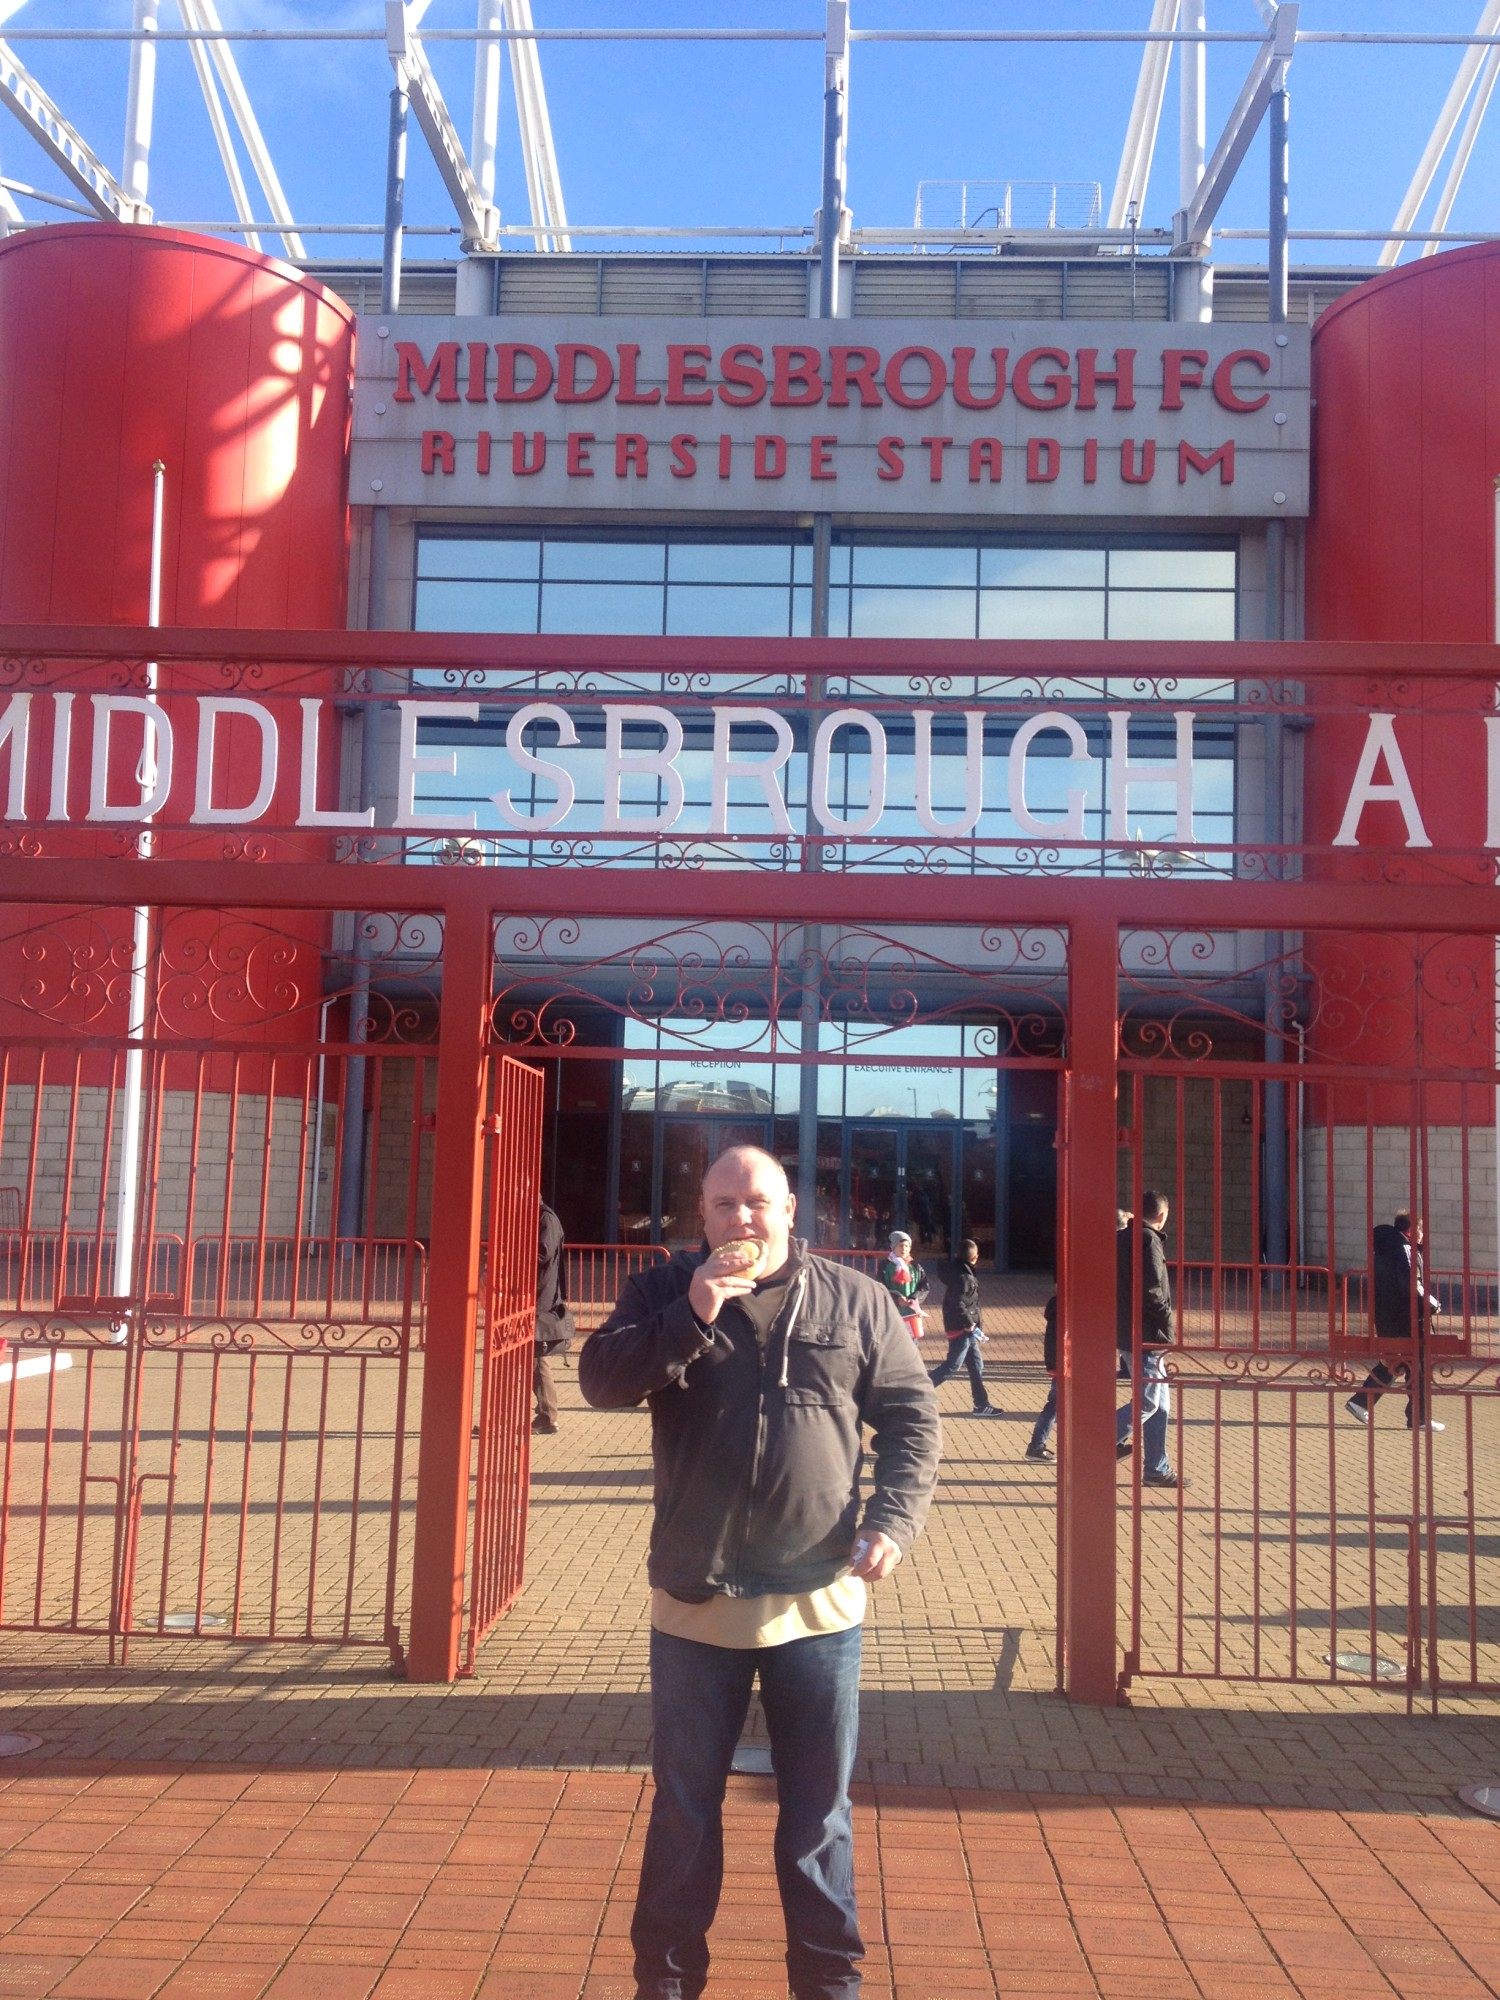 Northwich Guardian: Wayne Garnett enjoys his pie at Middlesbrough FC.